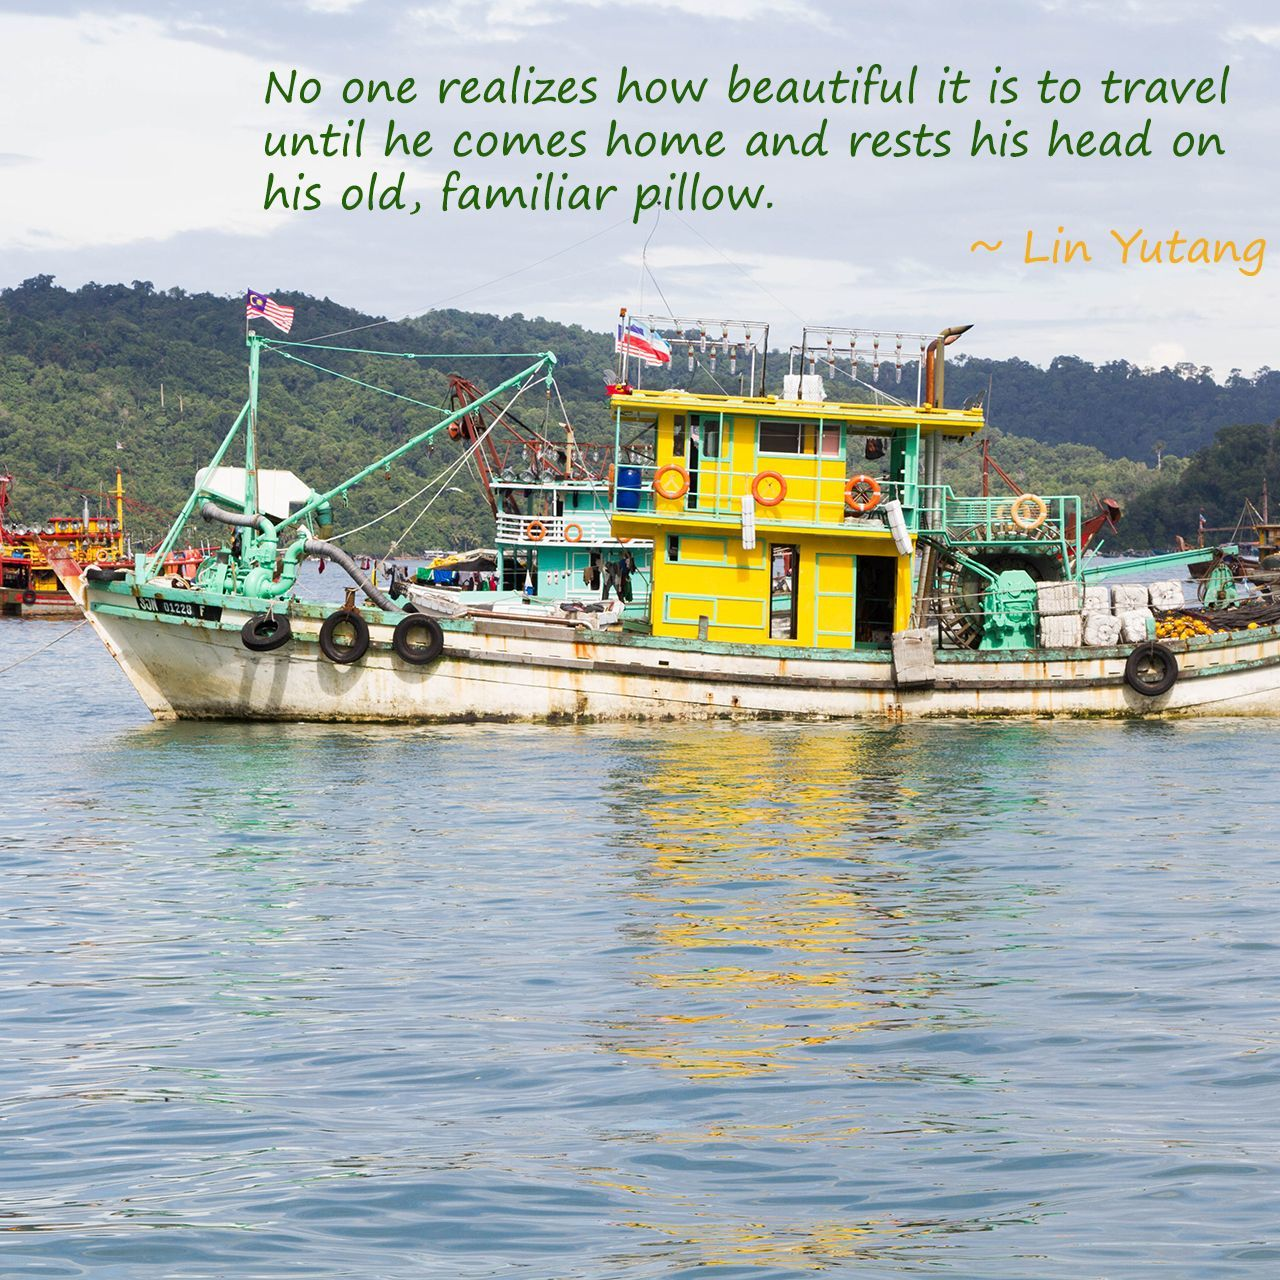 Weekend Travel Inspiration - Lin Yutang